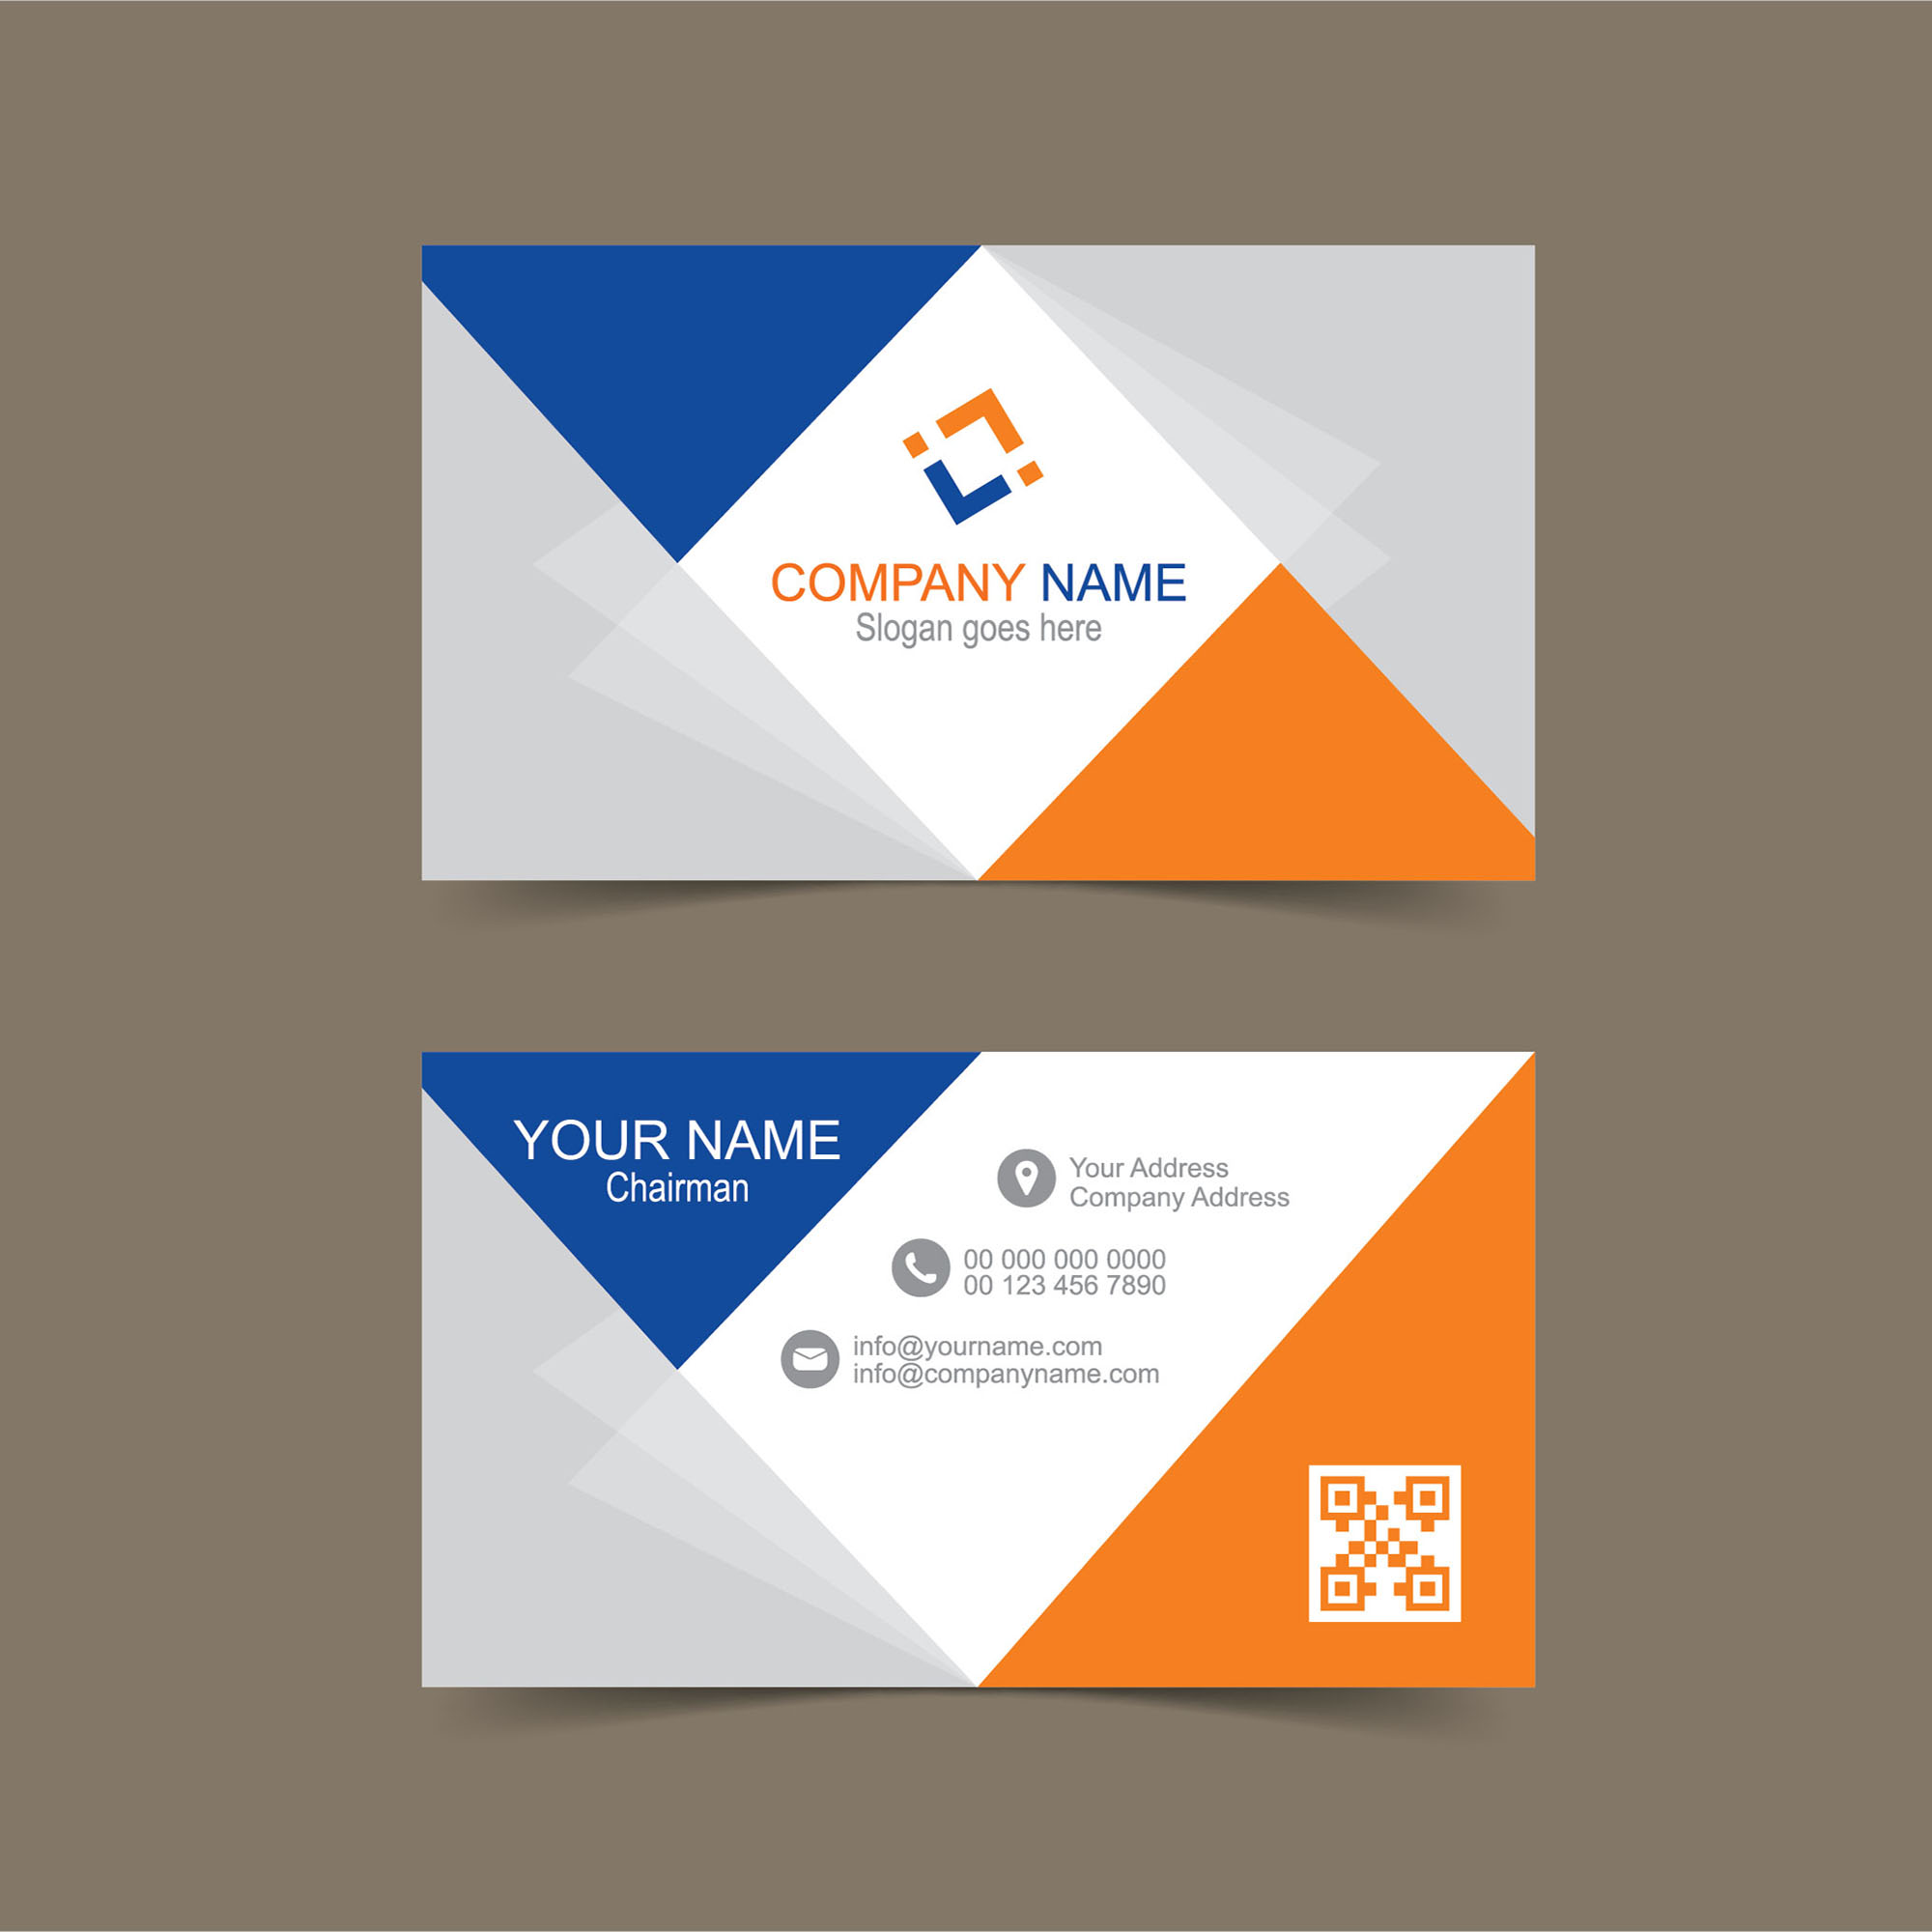 Free Business Card Template For Illustrator Wisxicom - Illustrator business card templates